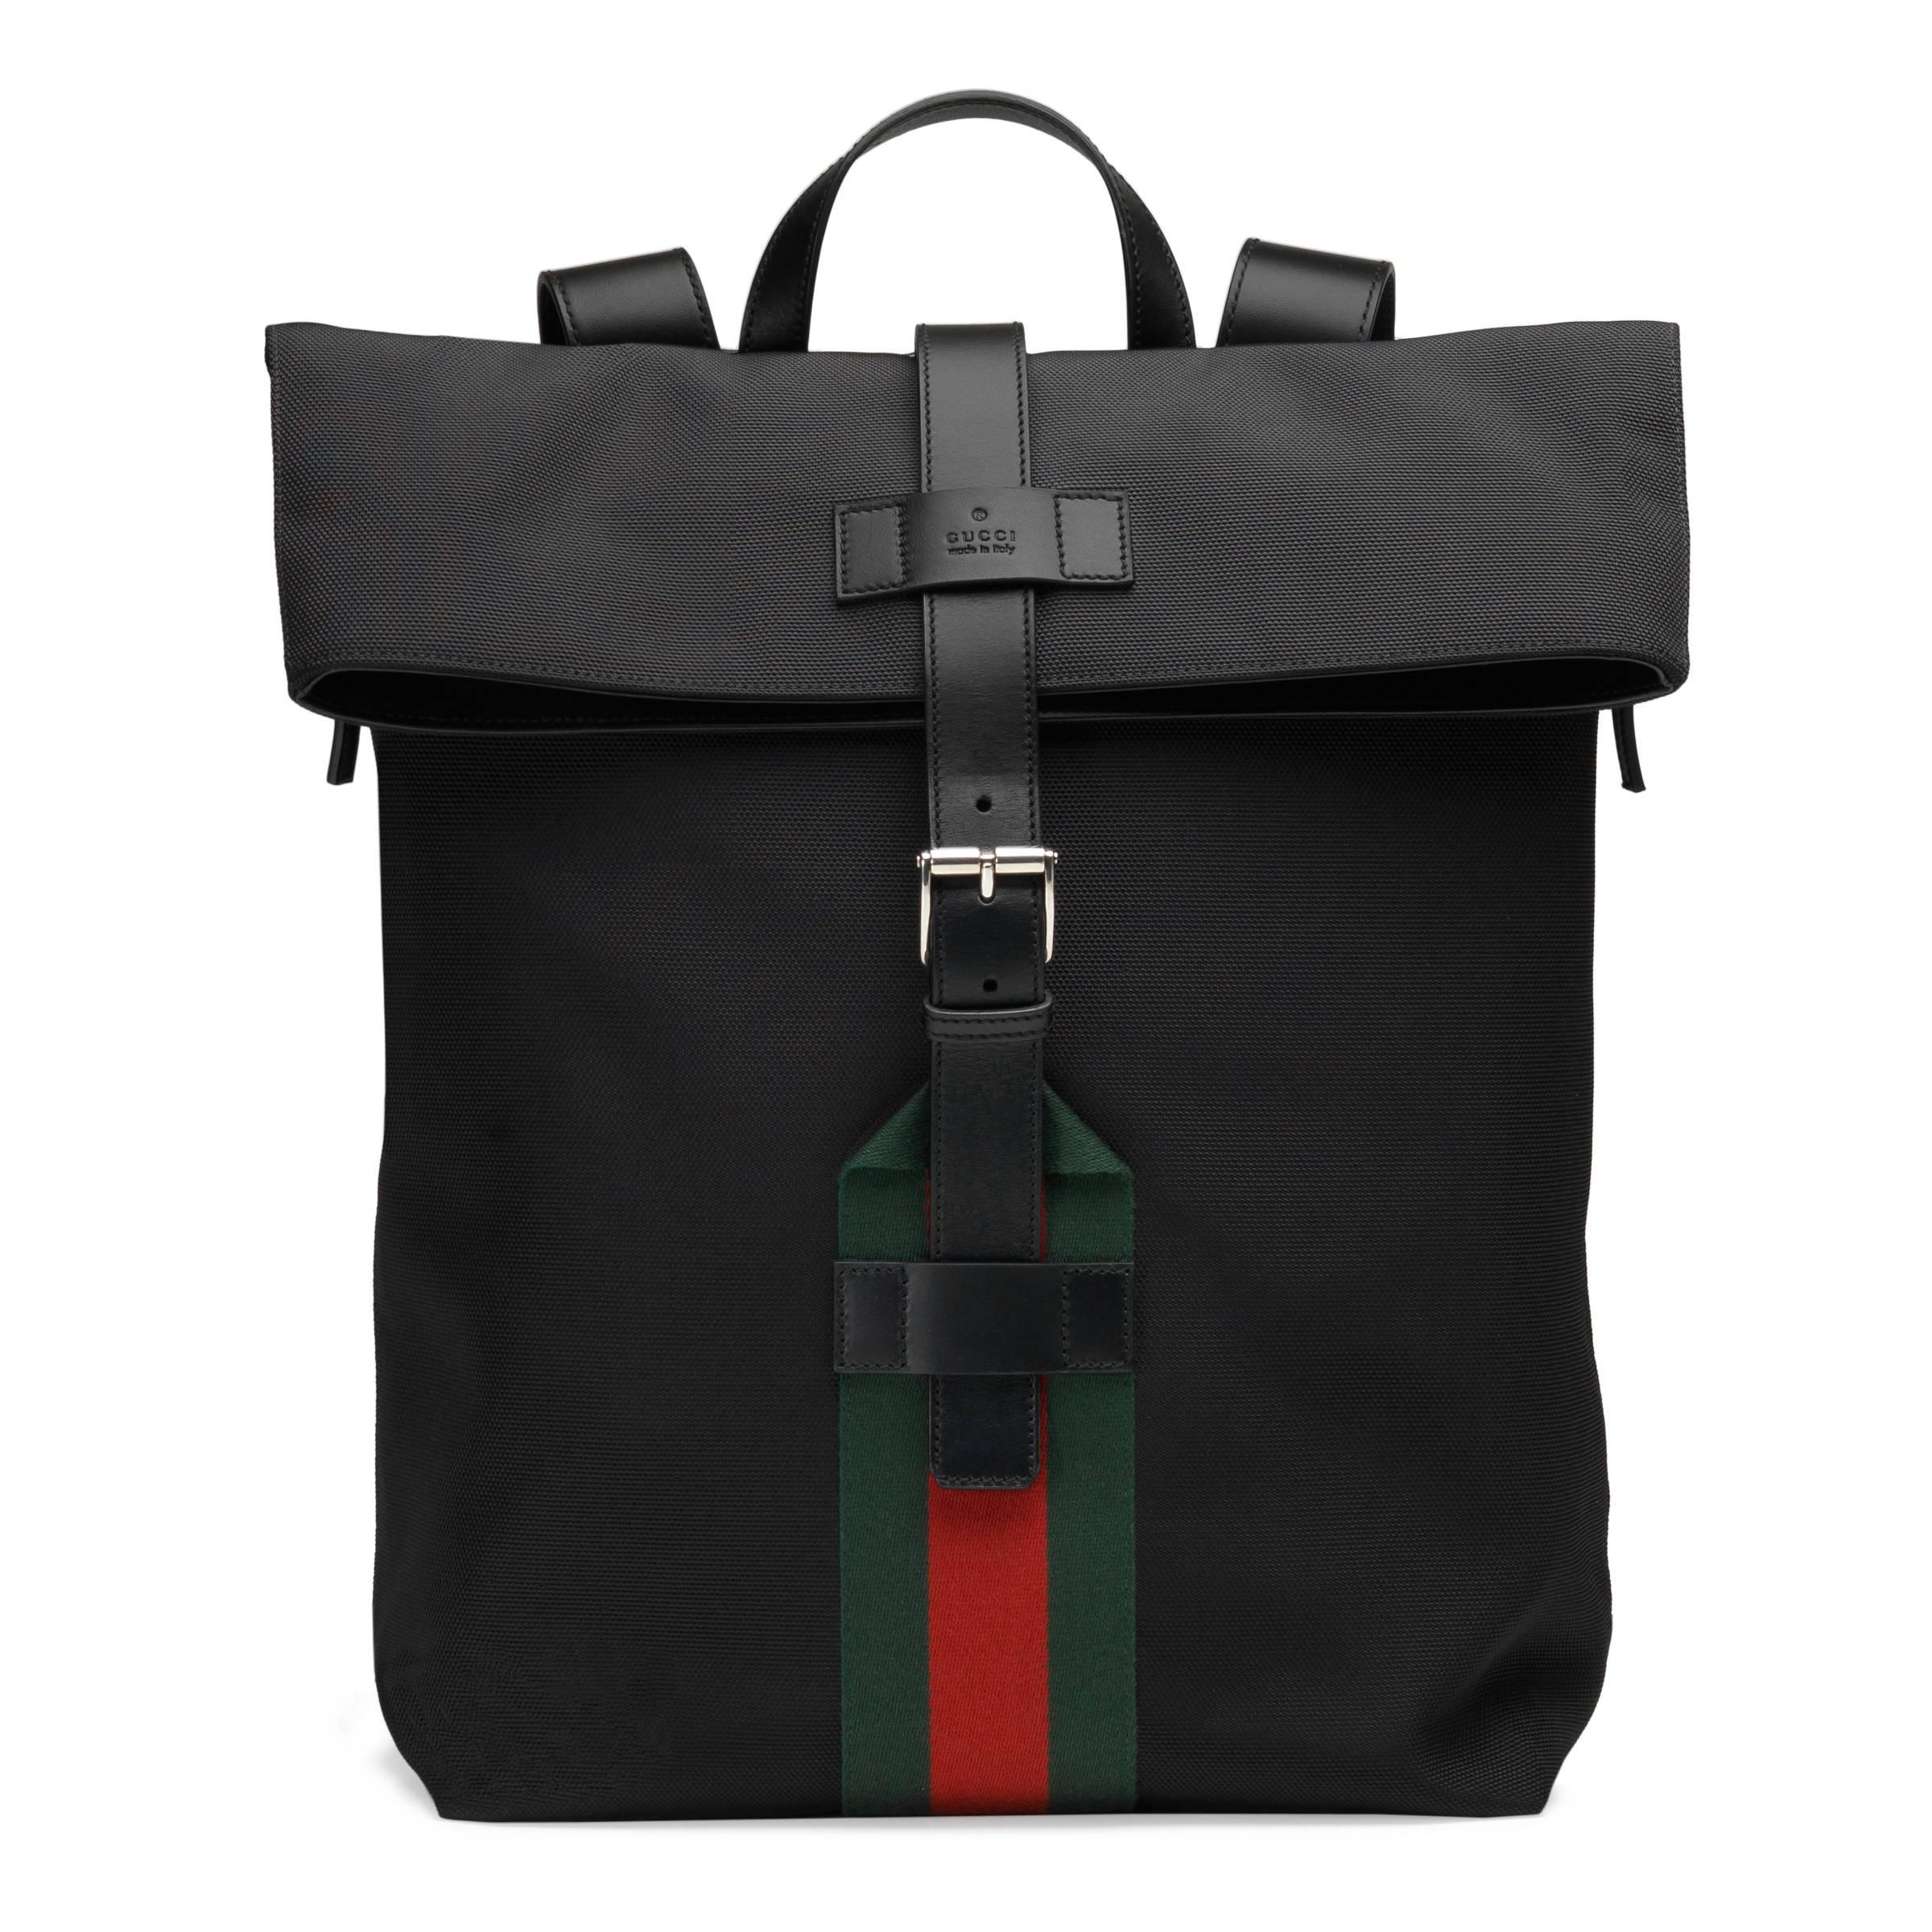 0c950d5009a Gucci Techno Canvas Backpack in Black for Men - Lyst